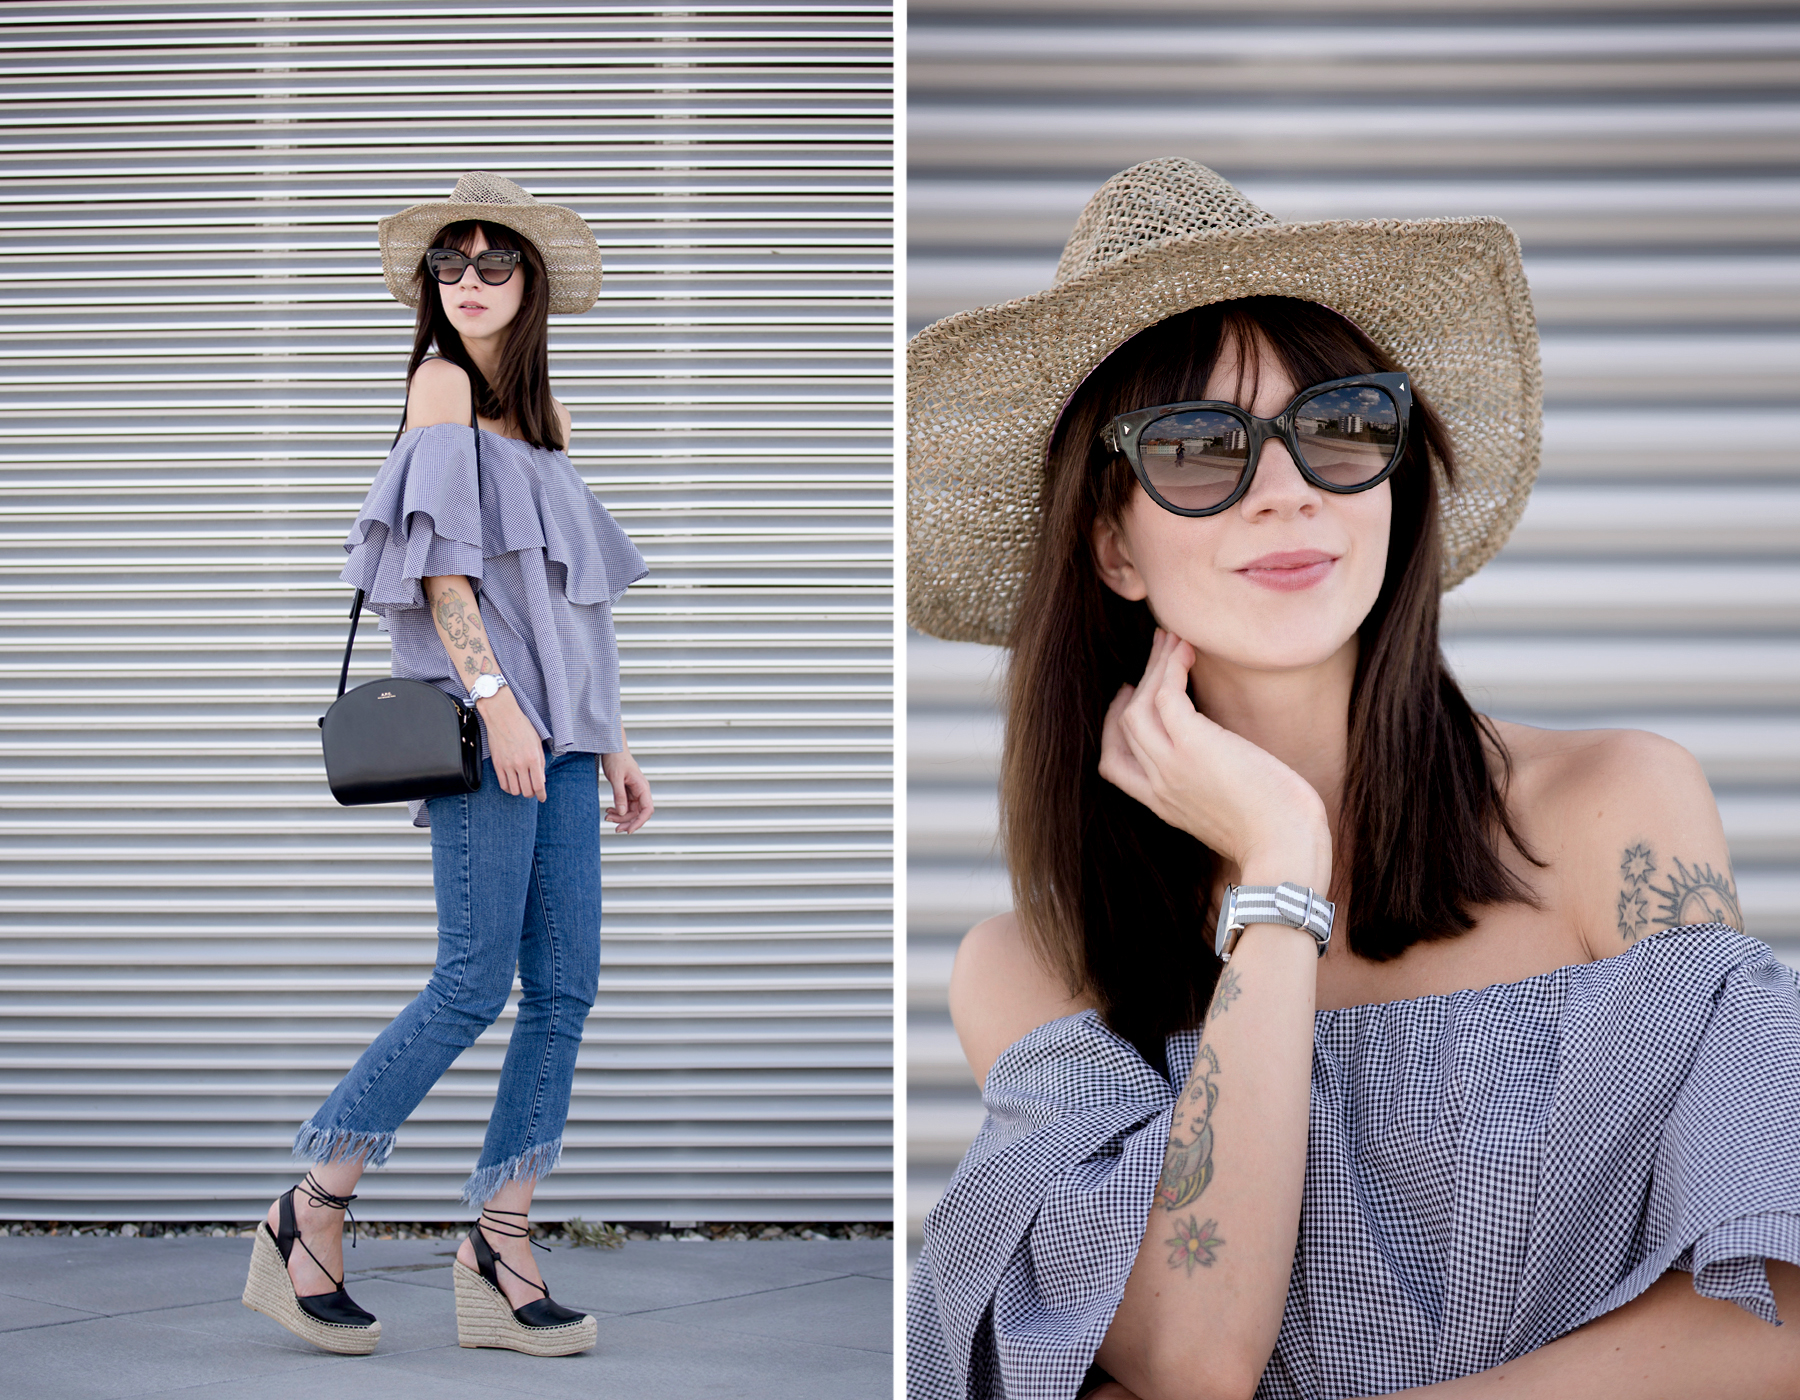 kapten&son watch mlm label off-shoulder blouse blue fringe jeans straw hat summer ootd look styling fashionblogger berlin modeblog cats & dogs ricarda schernus styleblogger 5